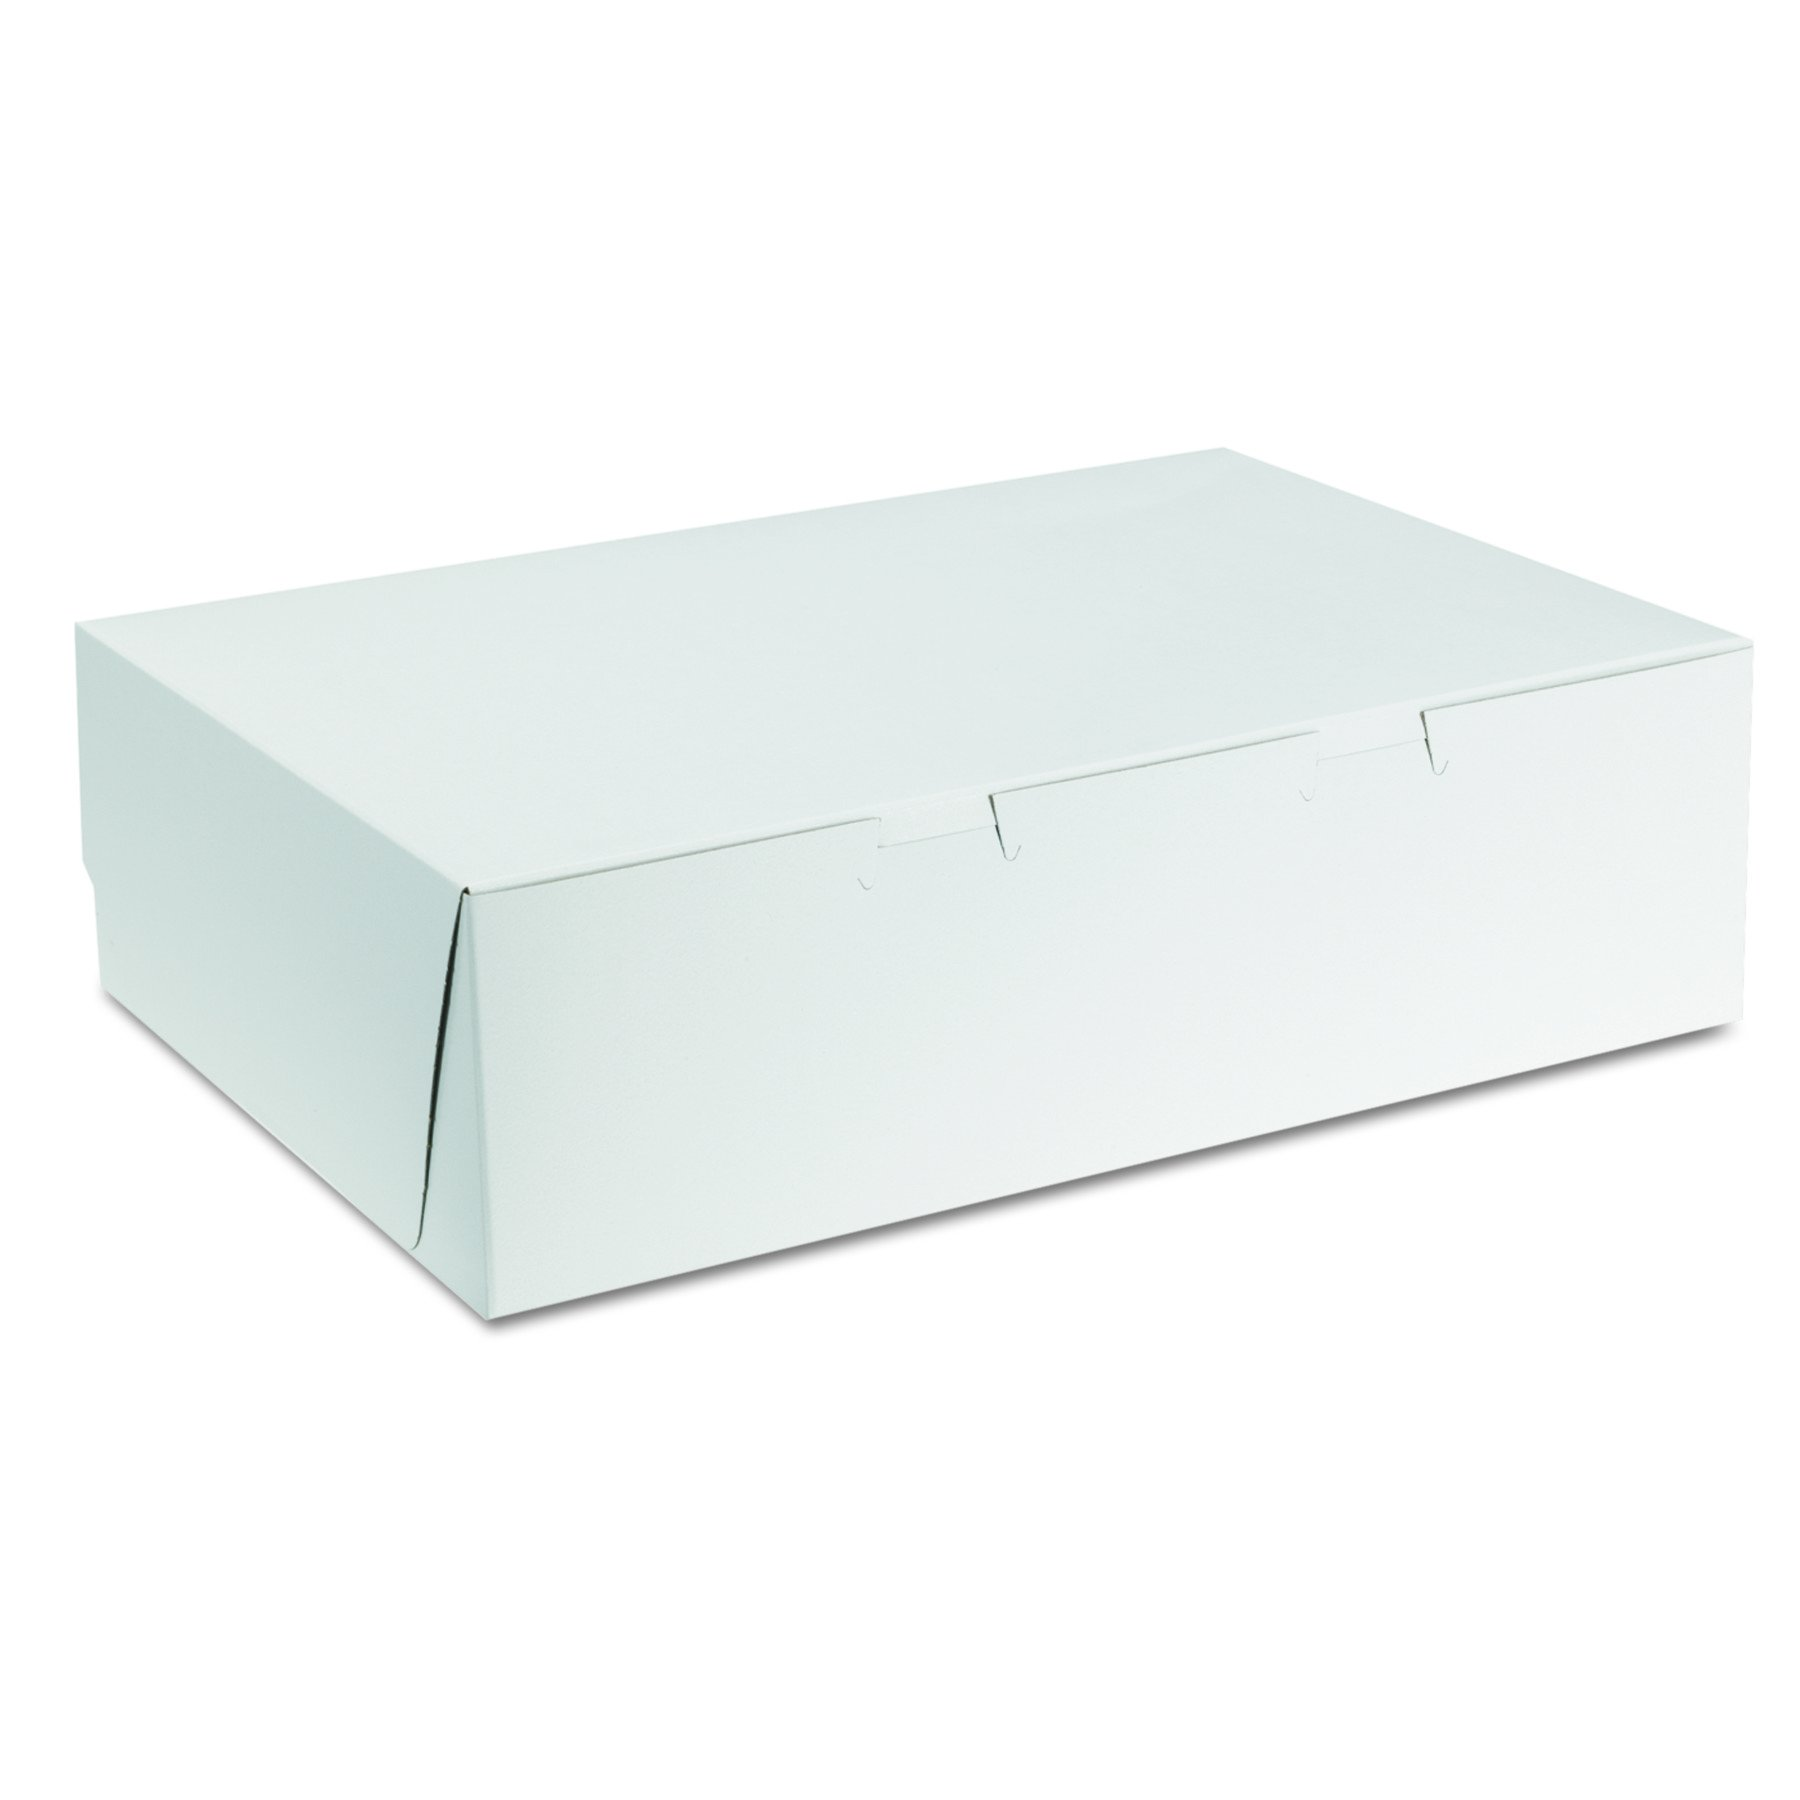 Southern Champion Tray 1025 Premium Clay Coated Kraft Paperboard White Non-Window Cake Box 14'' Length x 10'' Width x 4'' Height, 1/4 Sheet, Lock Corner, 1 Piece (Case of 100)